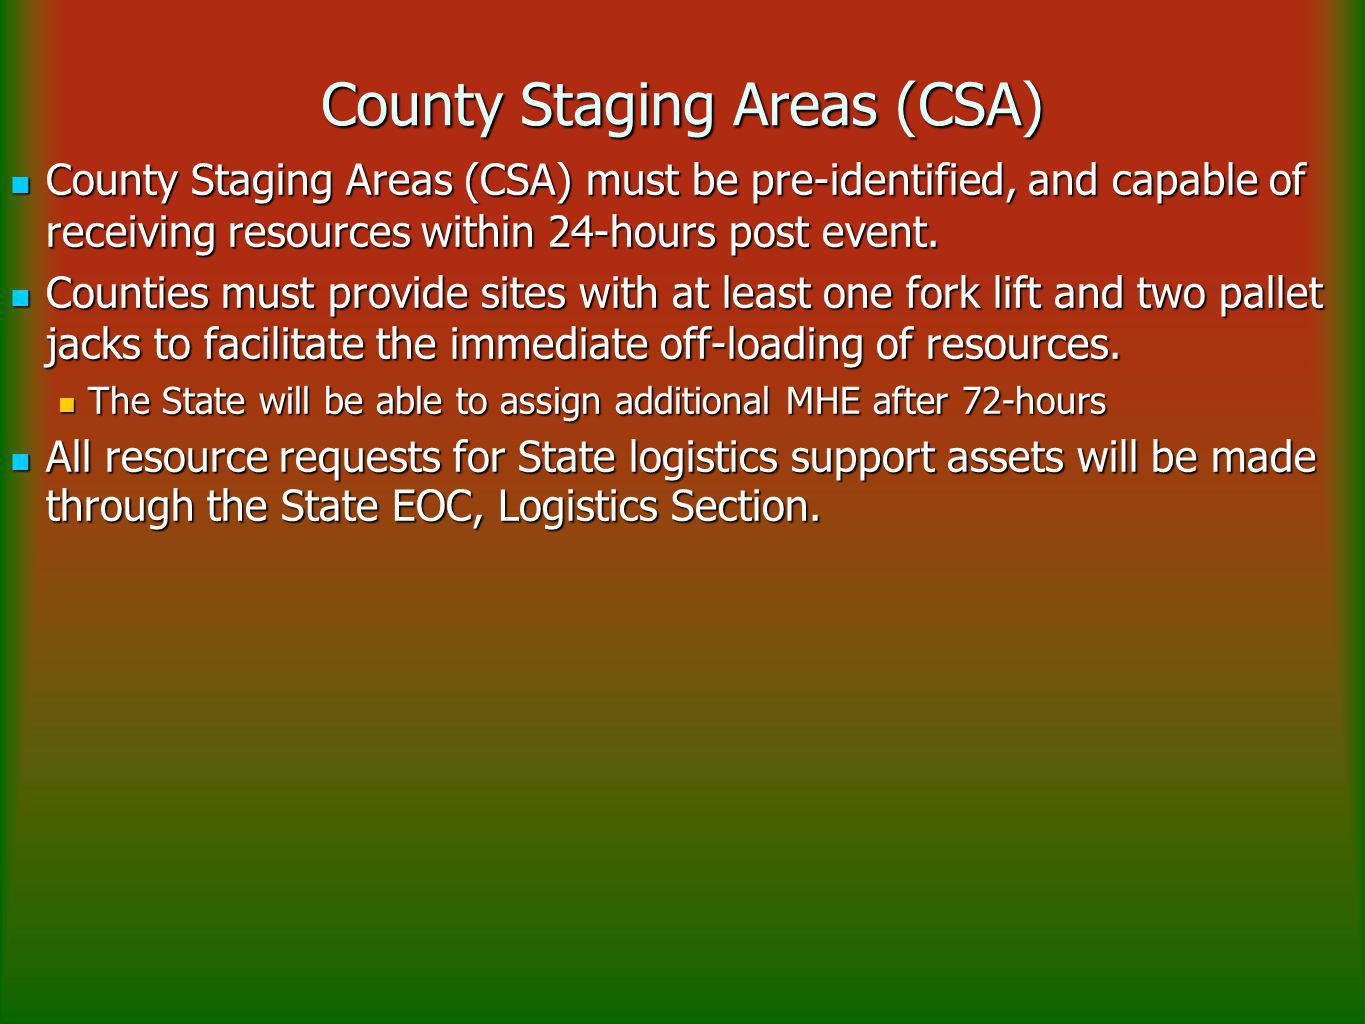 County Staging Areas (CSA) County Staging Areas (CSA) must be pre-identified, and capable of receiving resources within 24-hours post event.